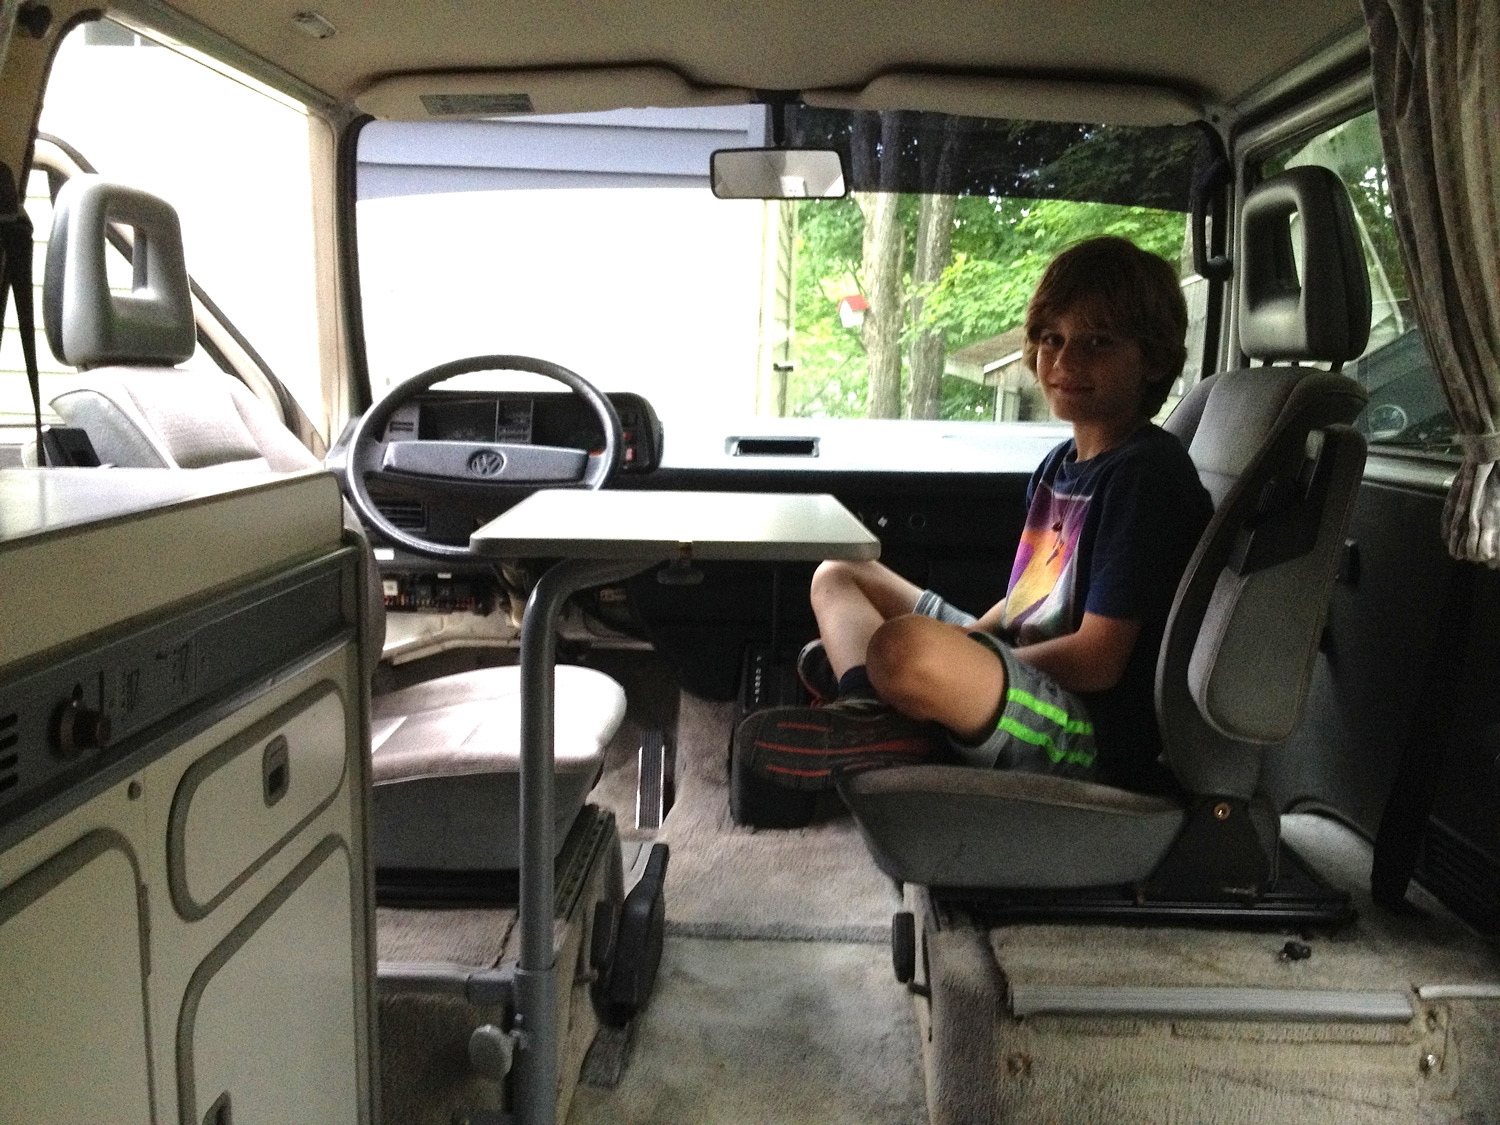 westfalia_interieur